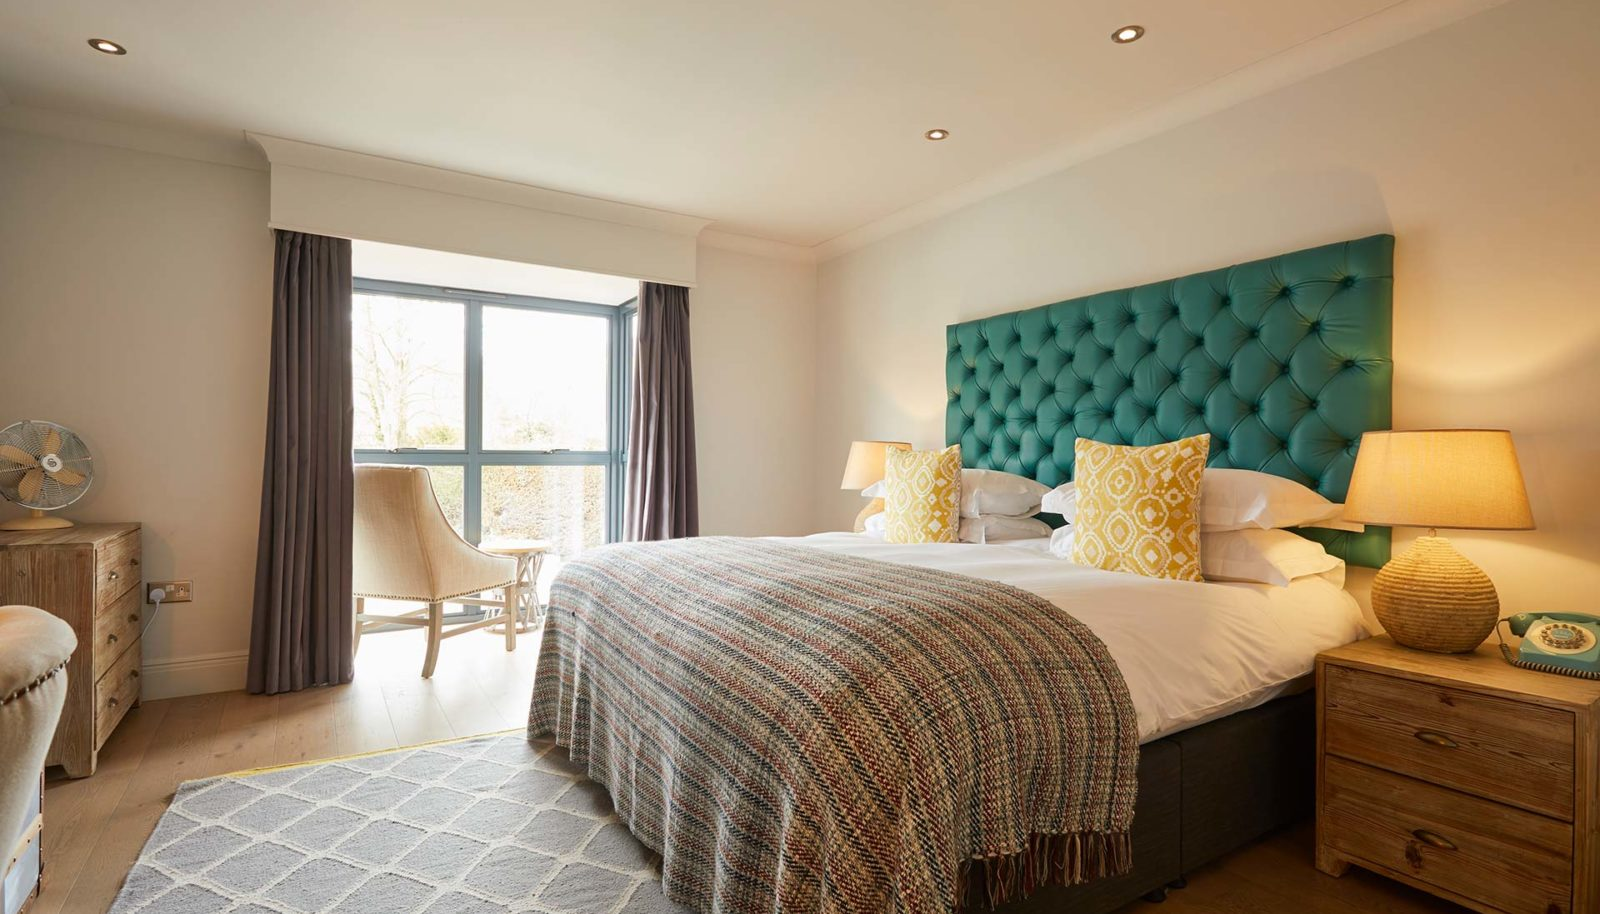 Medium double room with bed at riverside Hotel the Swan at Streatley